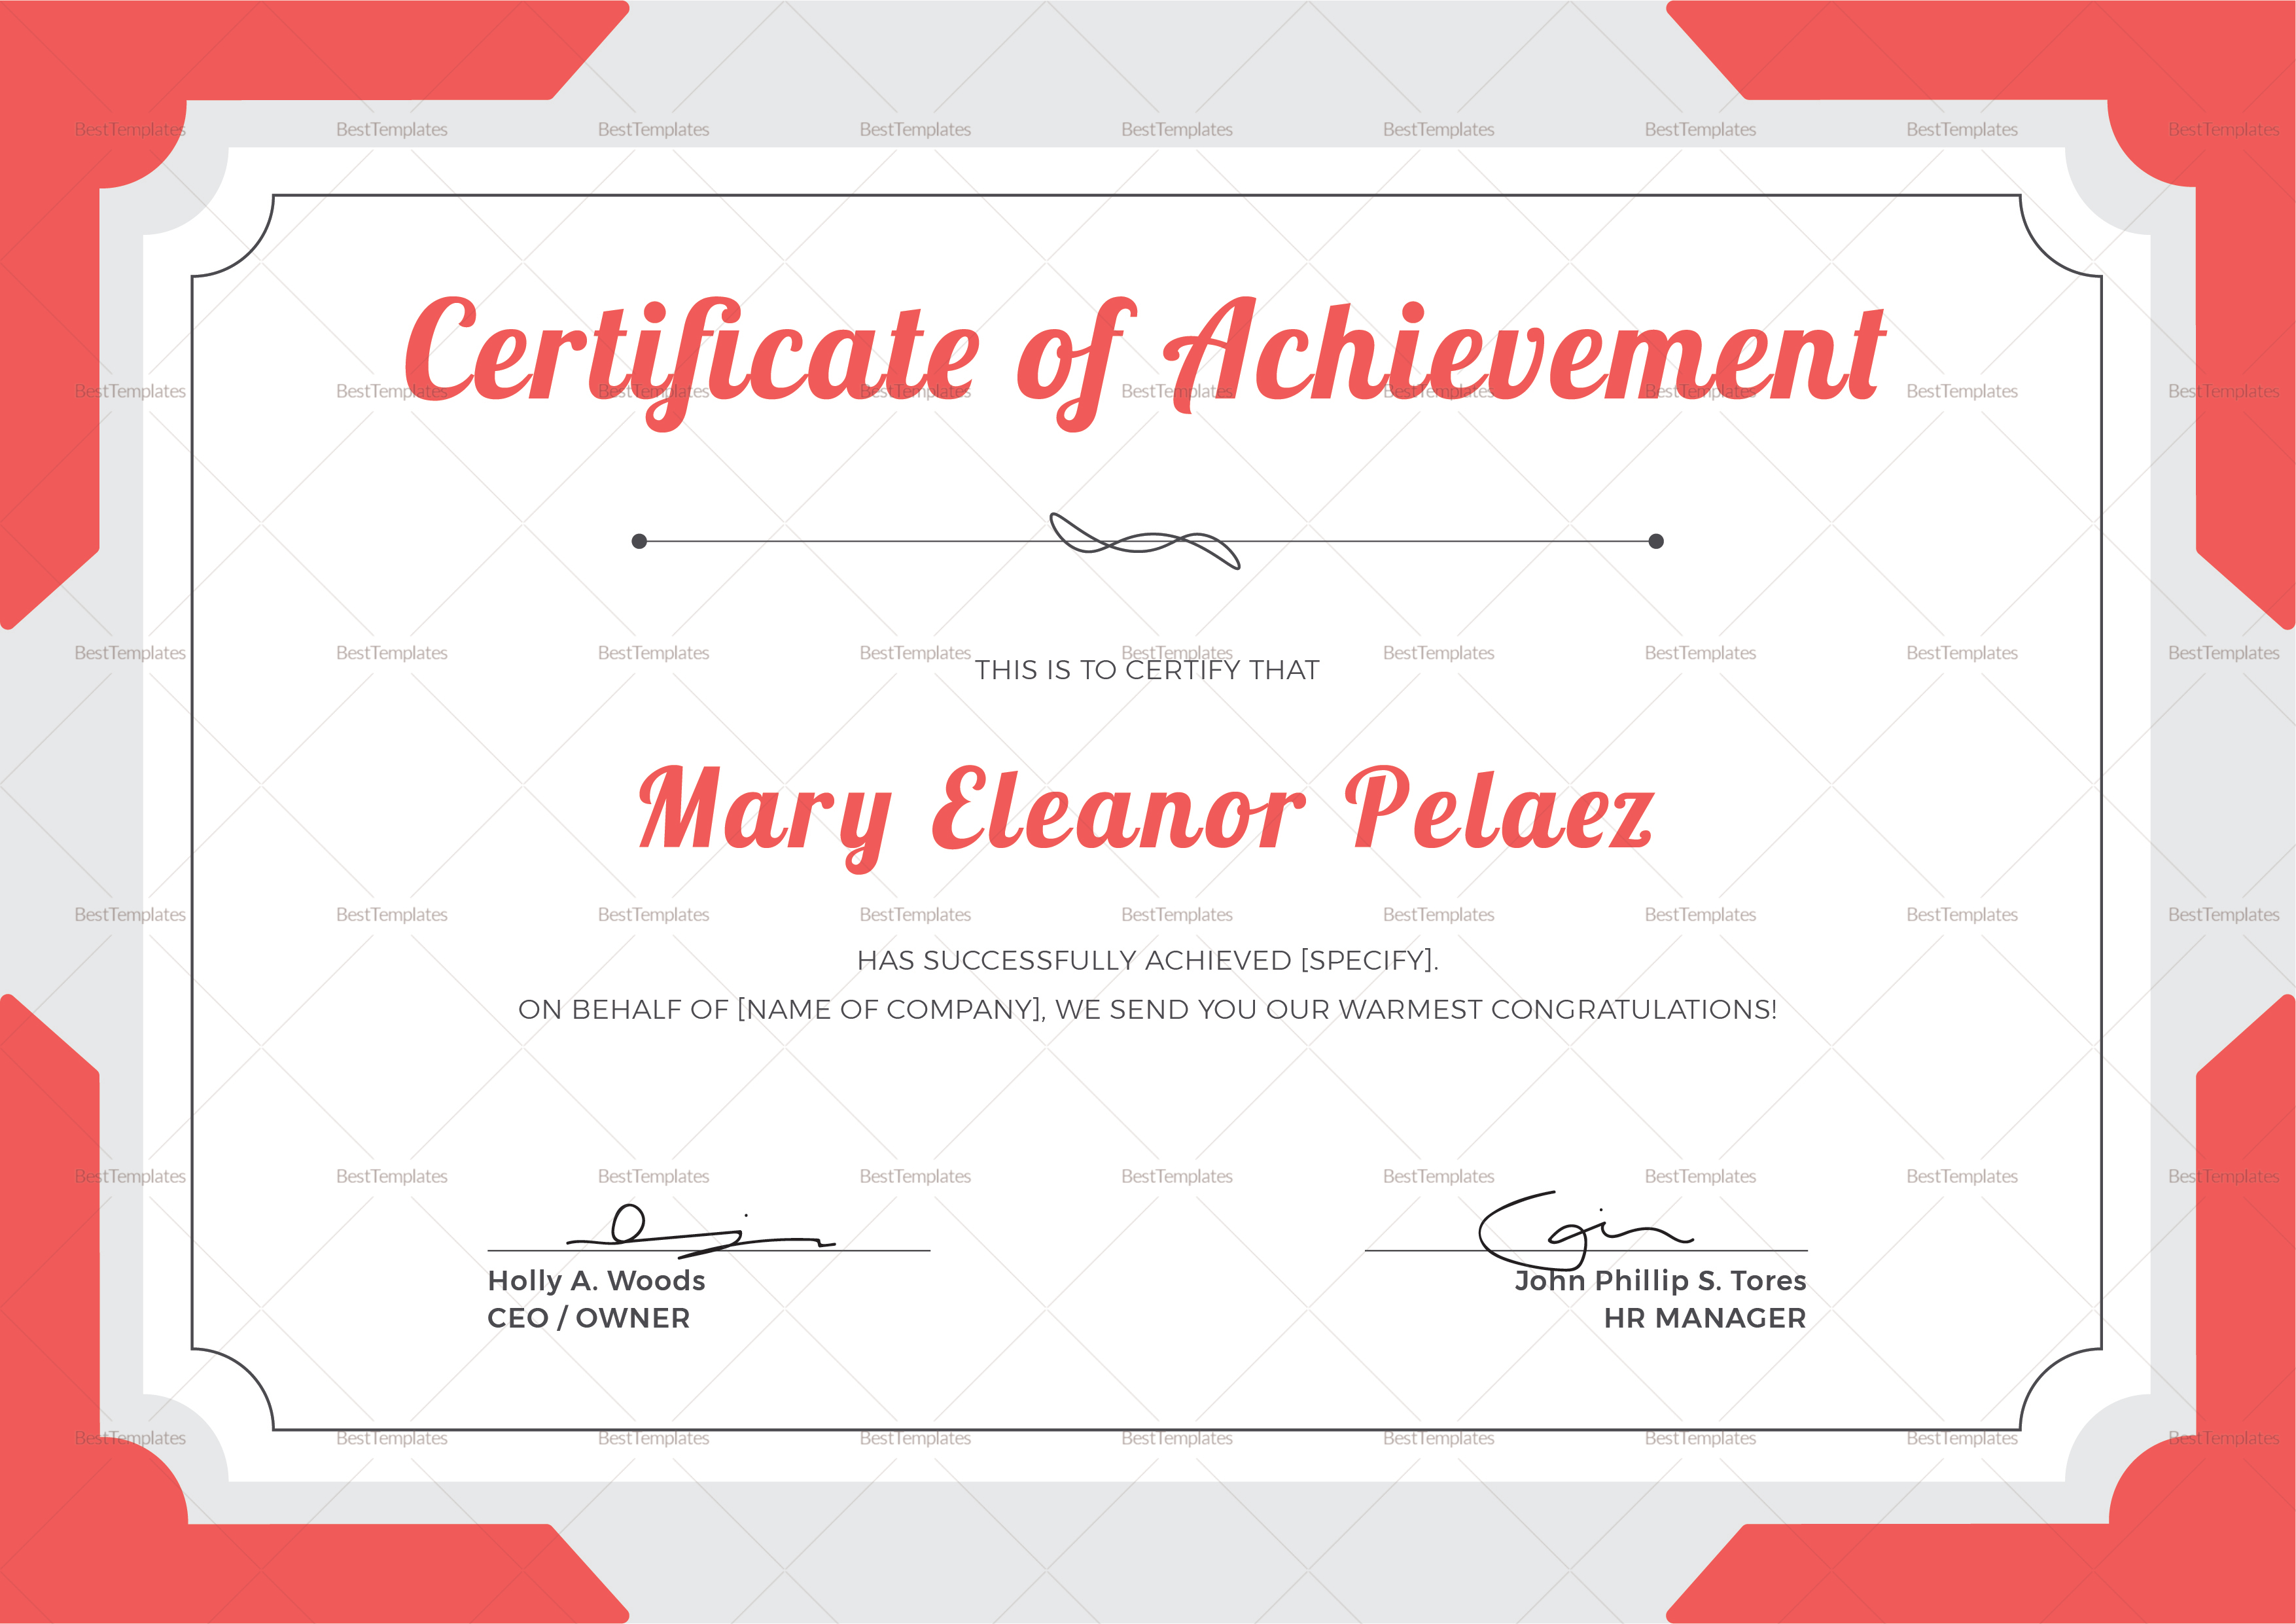 Script certificate design template in psd word publisher illustrator indesign for Indesign certificate template